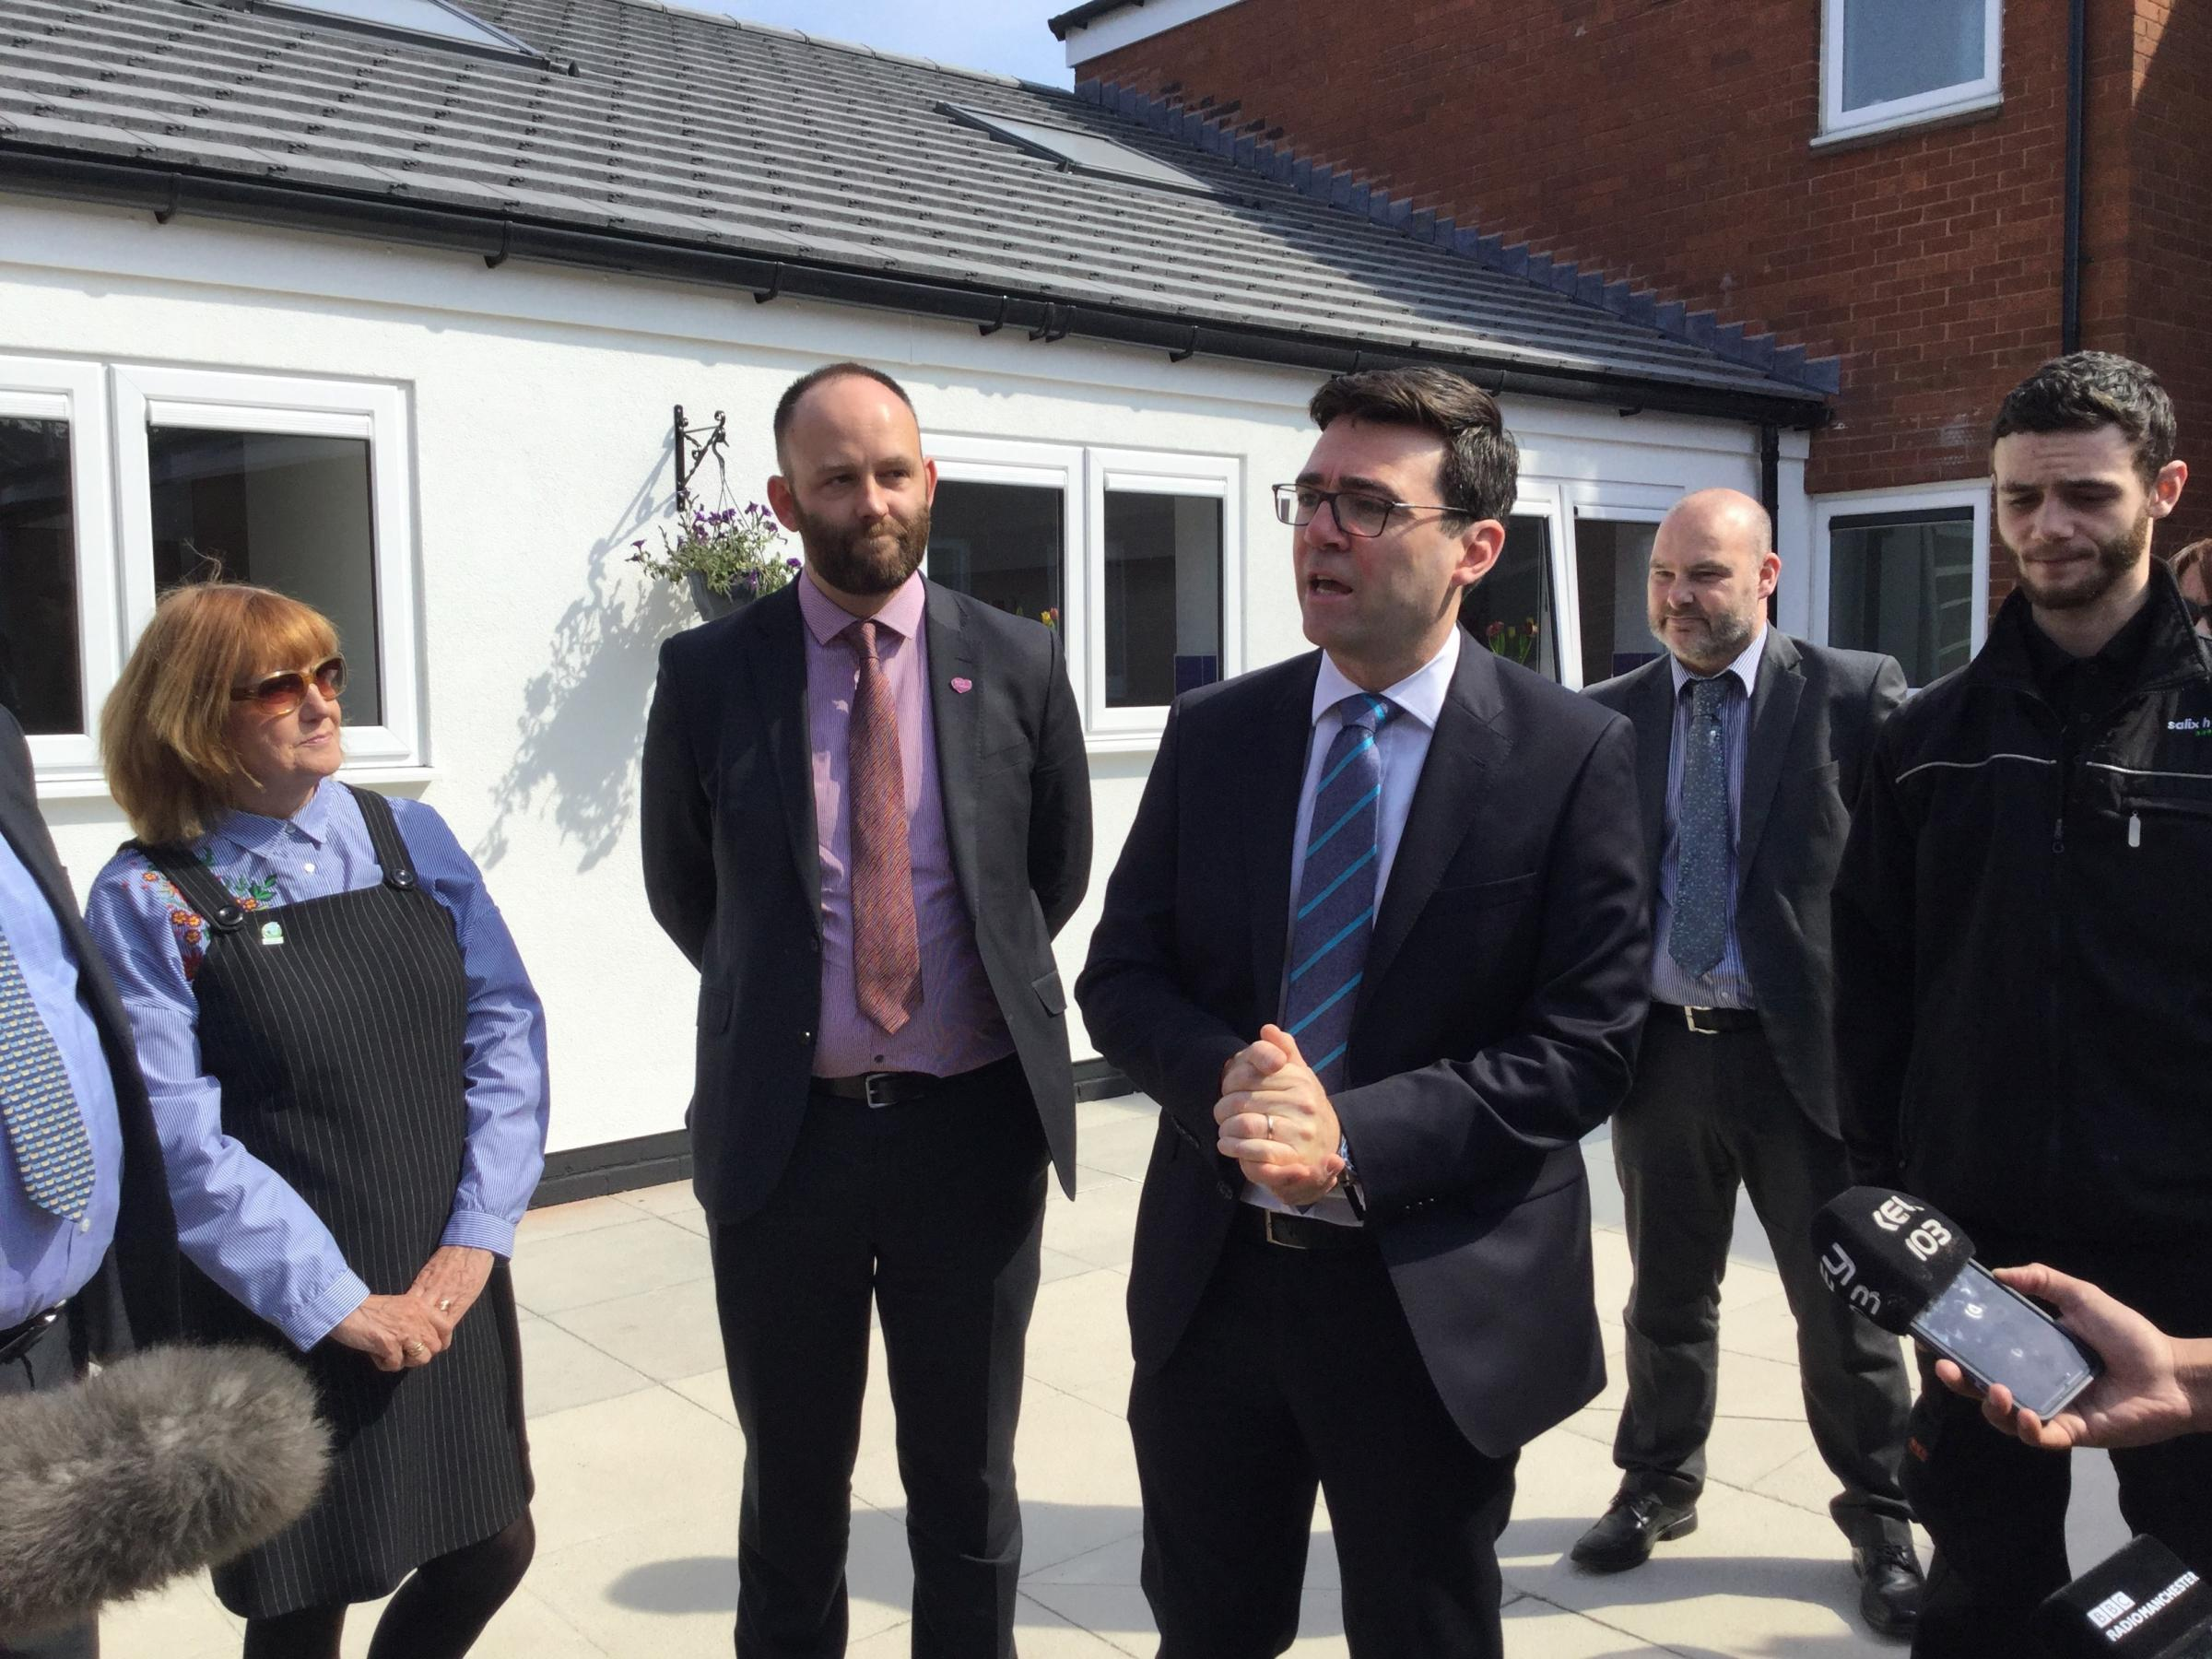 Andy Burnham announcing that Salford mayor Paul Dennett will lead the rewrite of the Greater Manchester Spatial Framework.